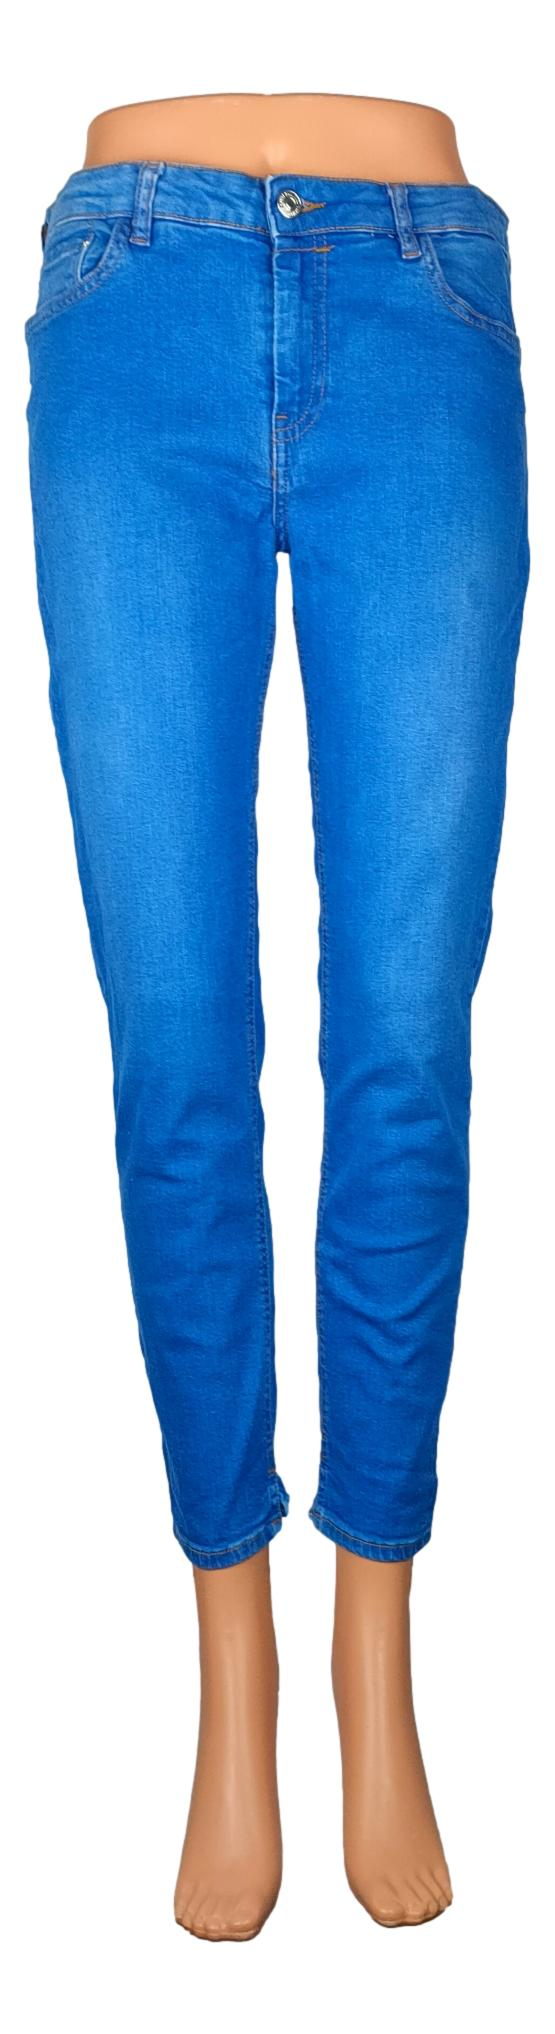 Jean MNG - Taille 38